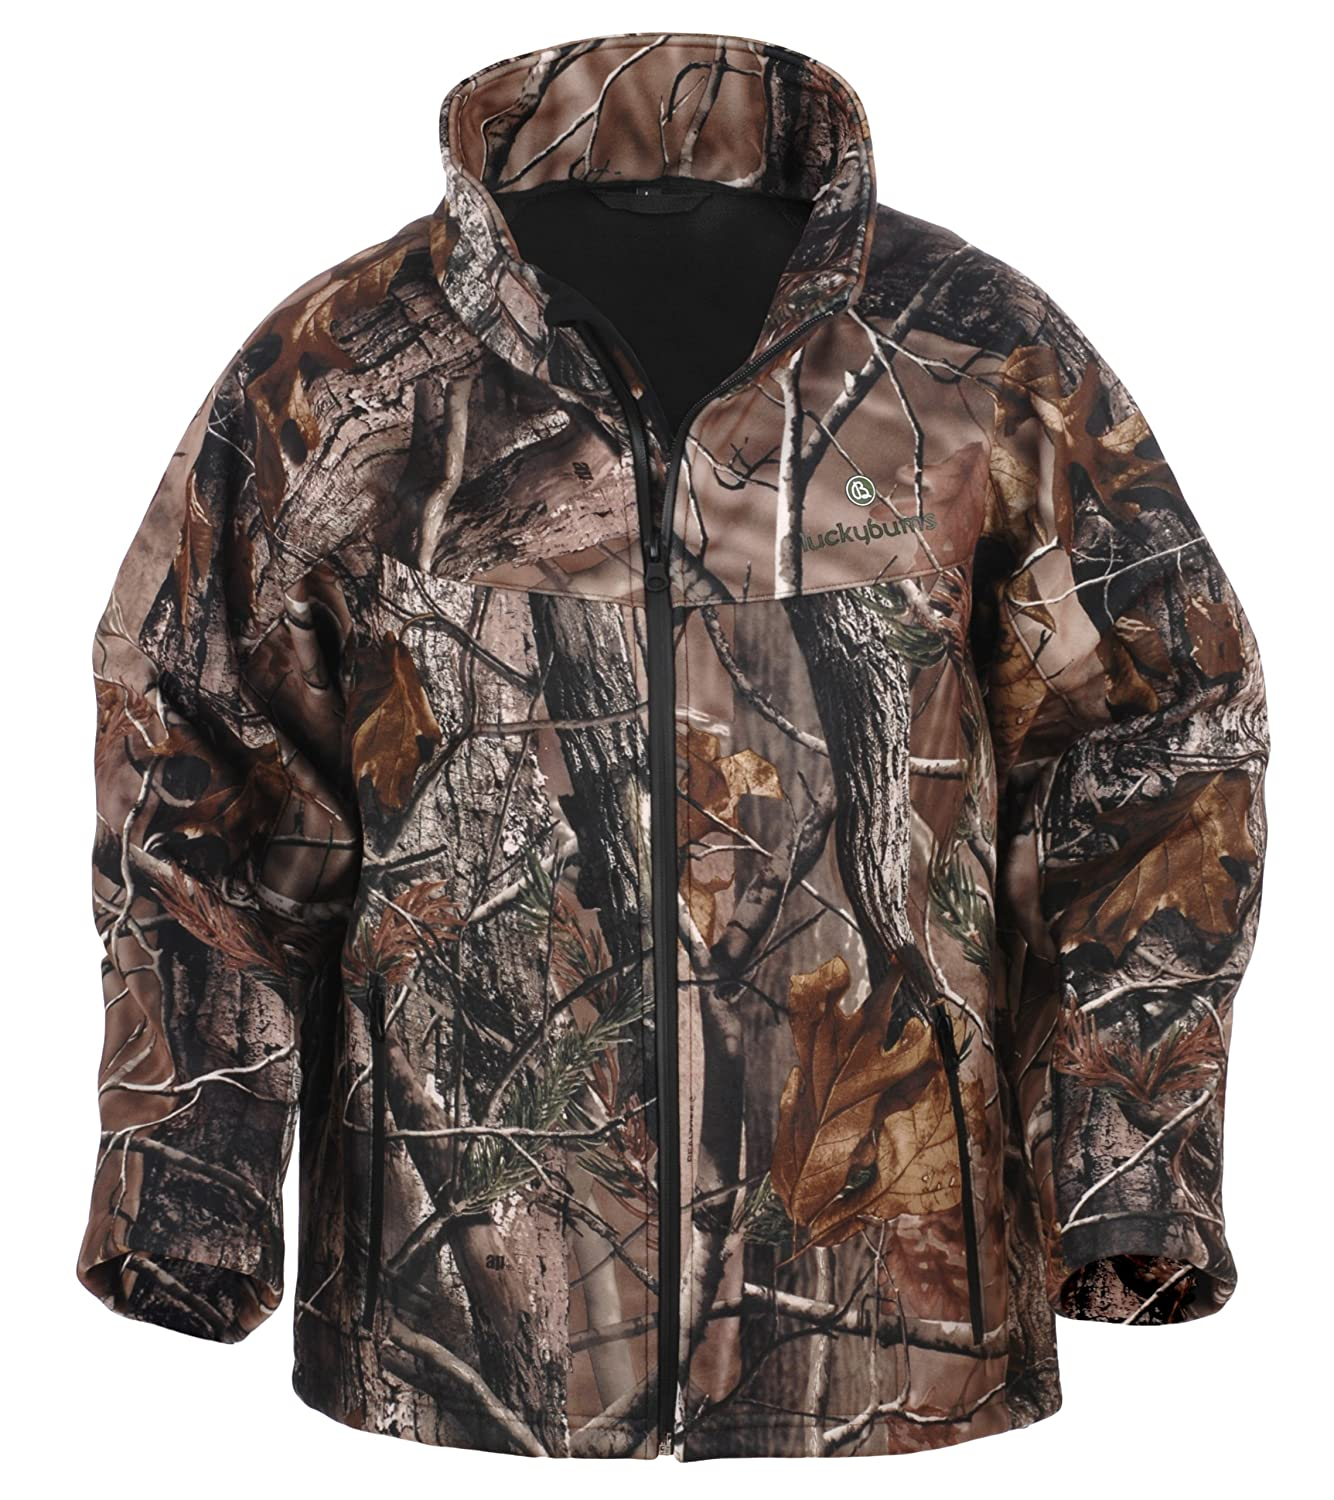 Lucky Bums Kid's Soft Shell Jacket, (X-Small, Camo Realtree APHD) 200APXS